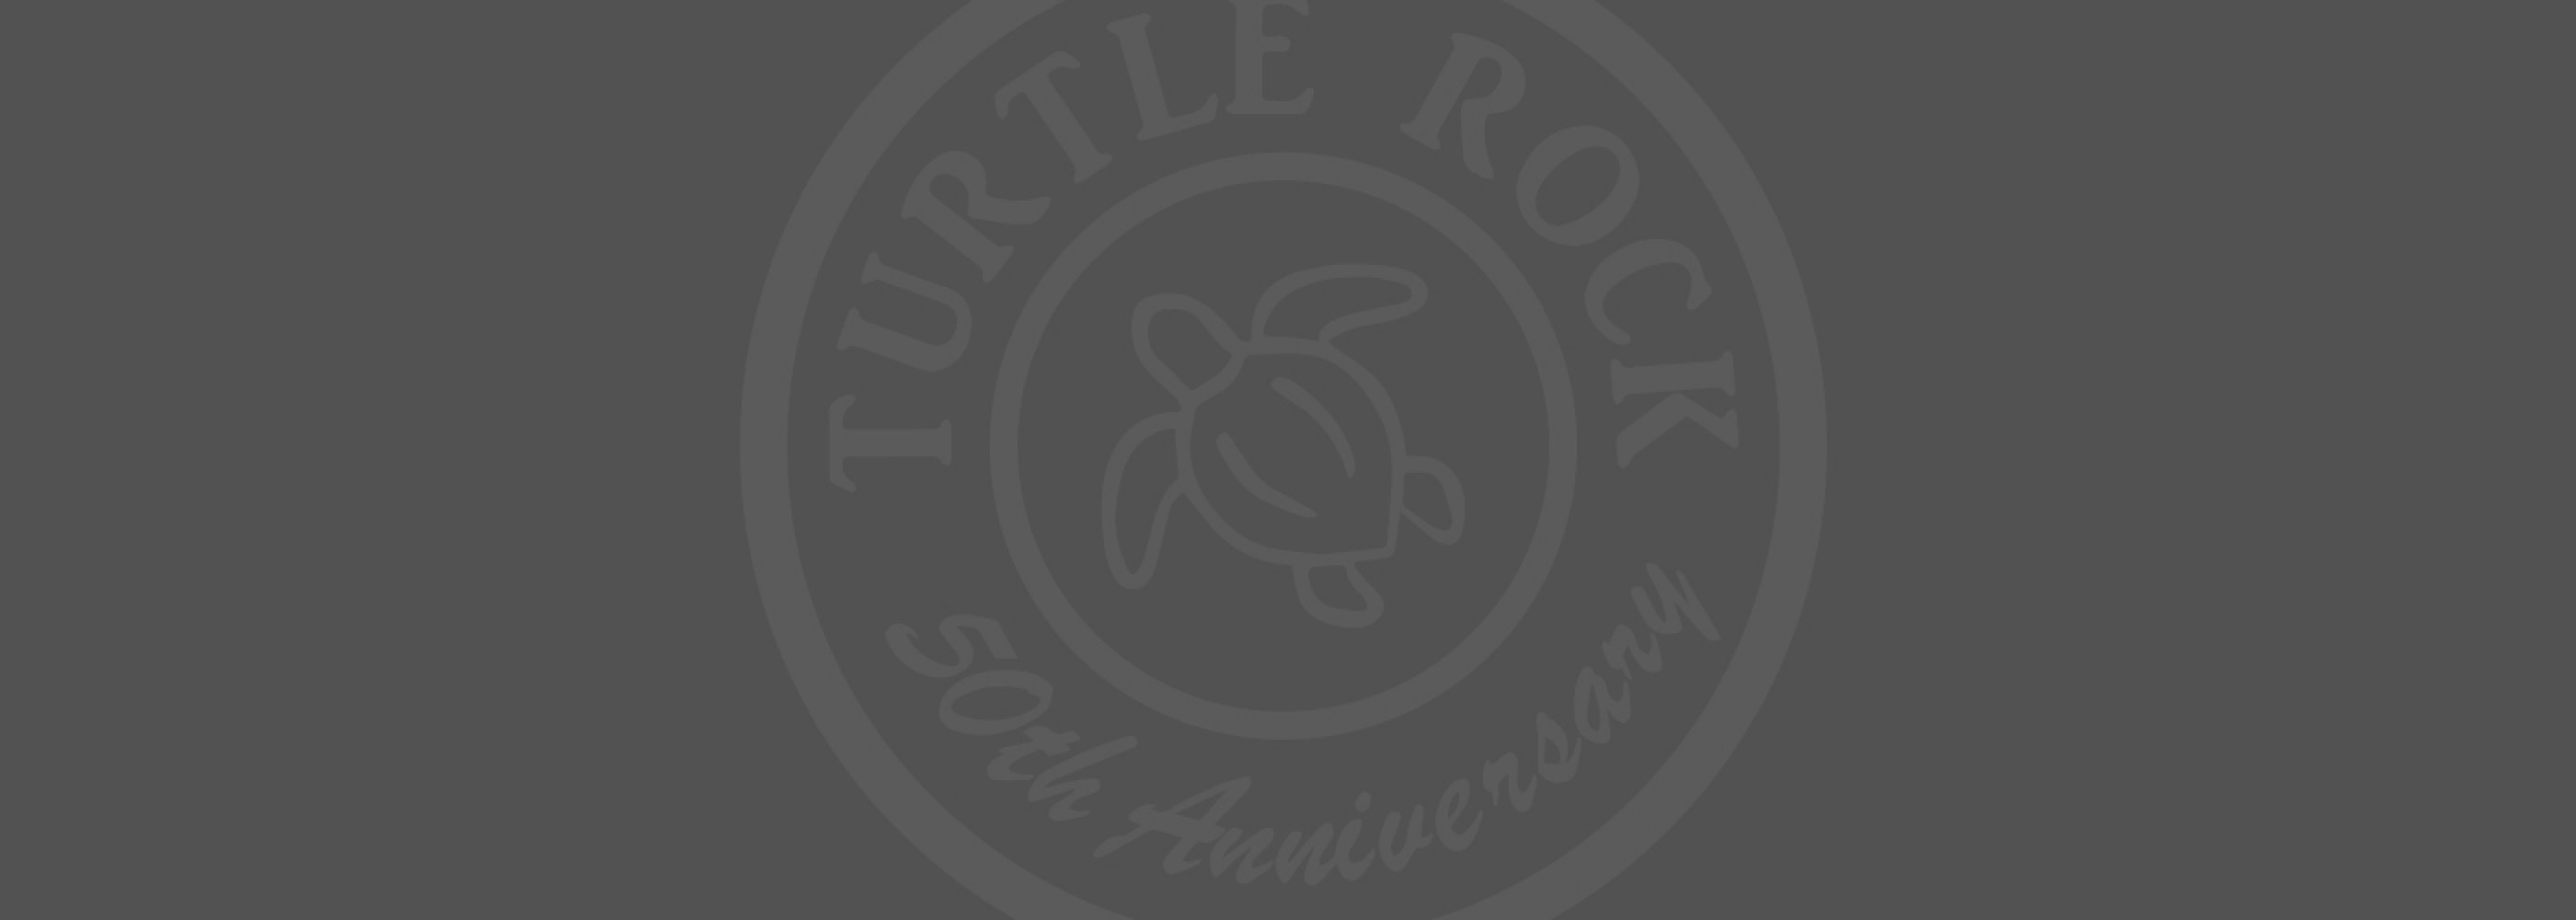 turtlerock logo